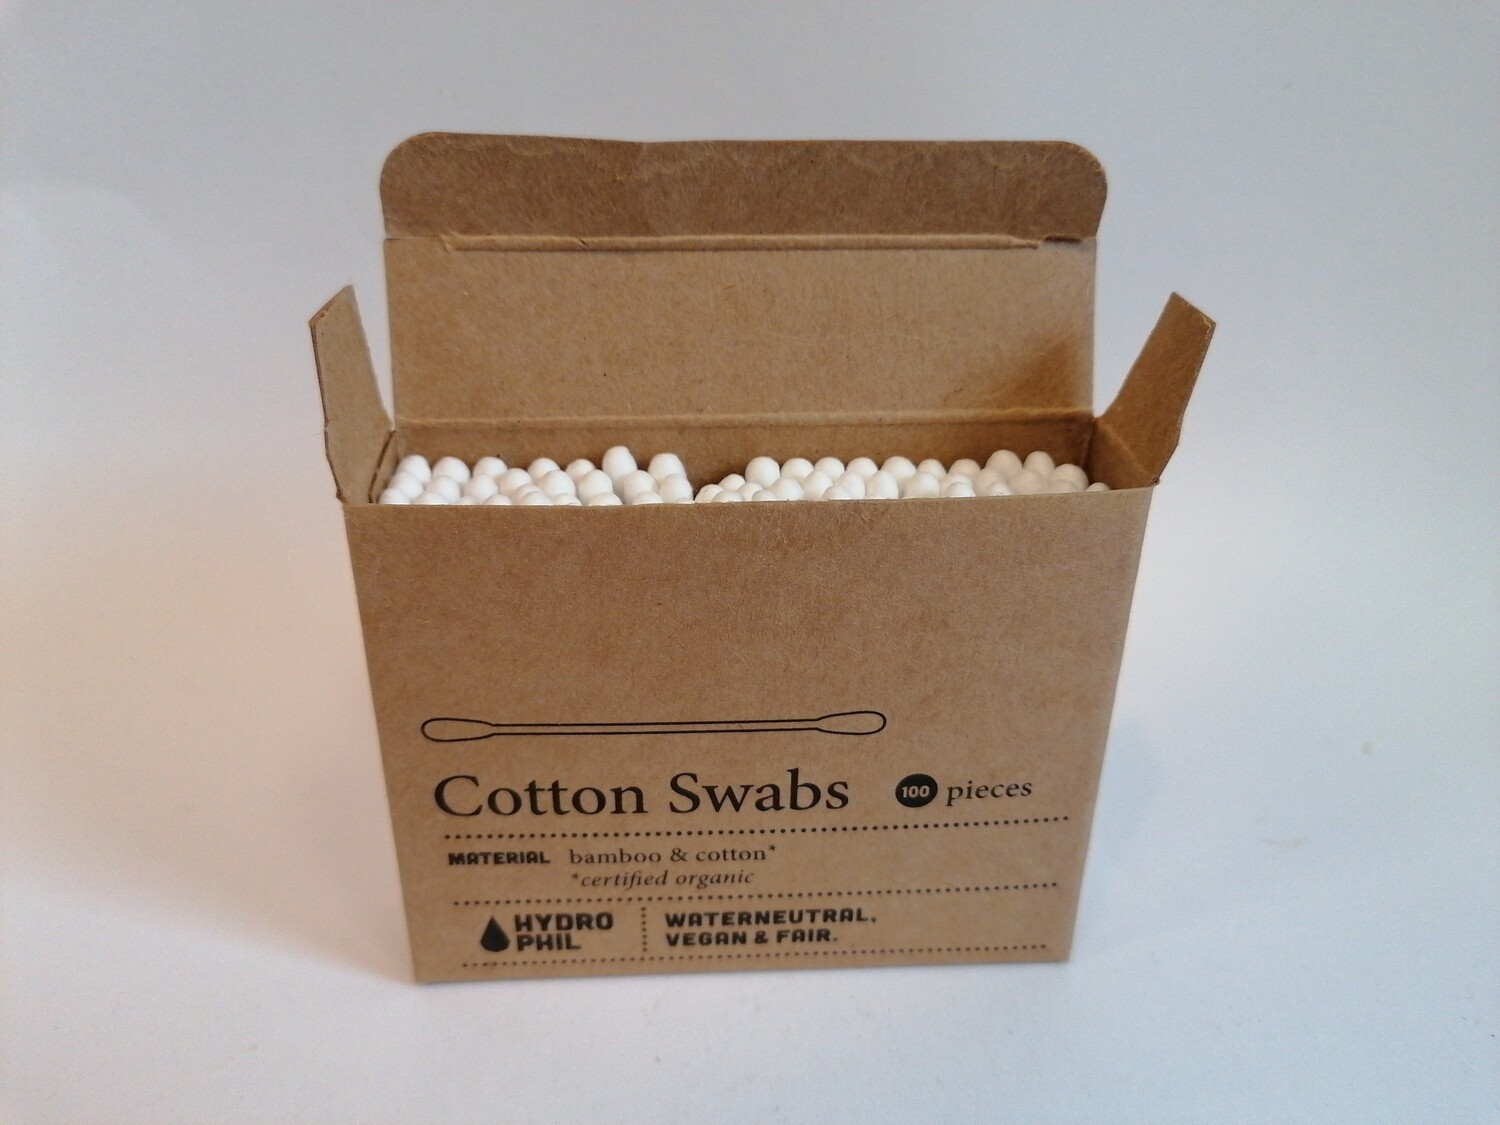 Hydro Phil 100 Cotton Swabs